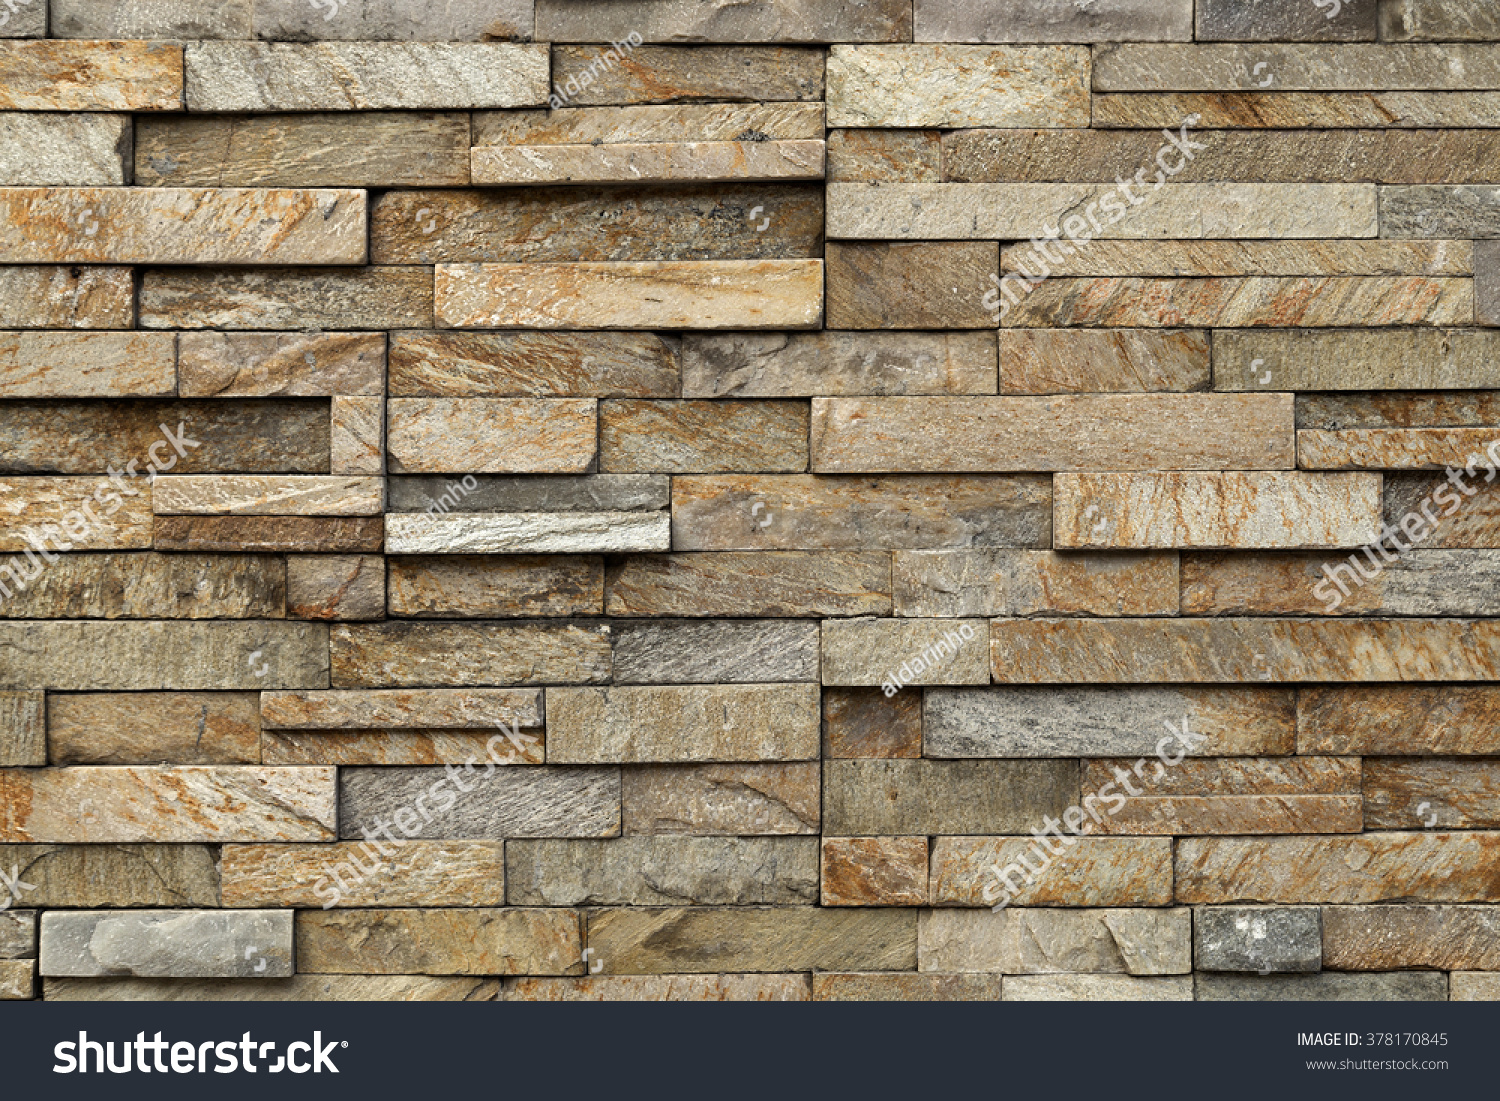 Stone wall pattern./Natural stone wall./Homes and workplaces can be ...